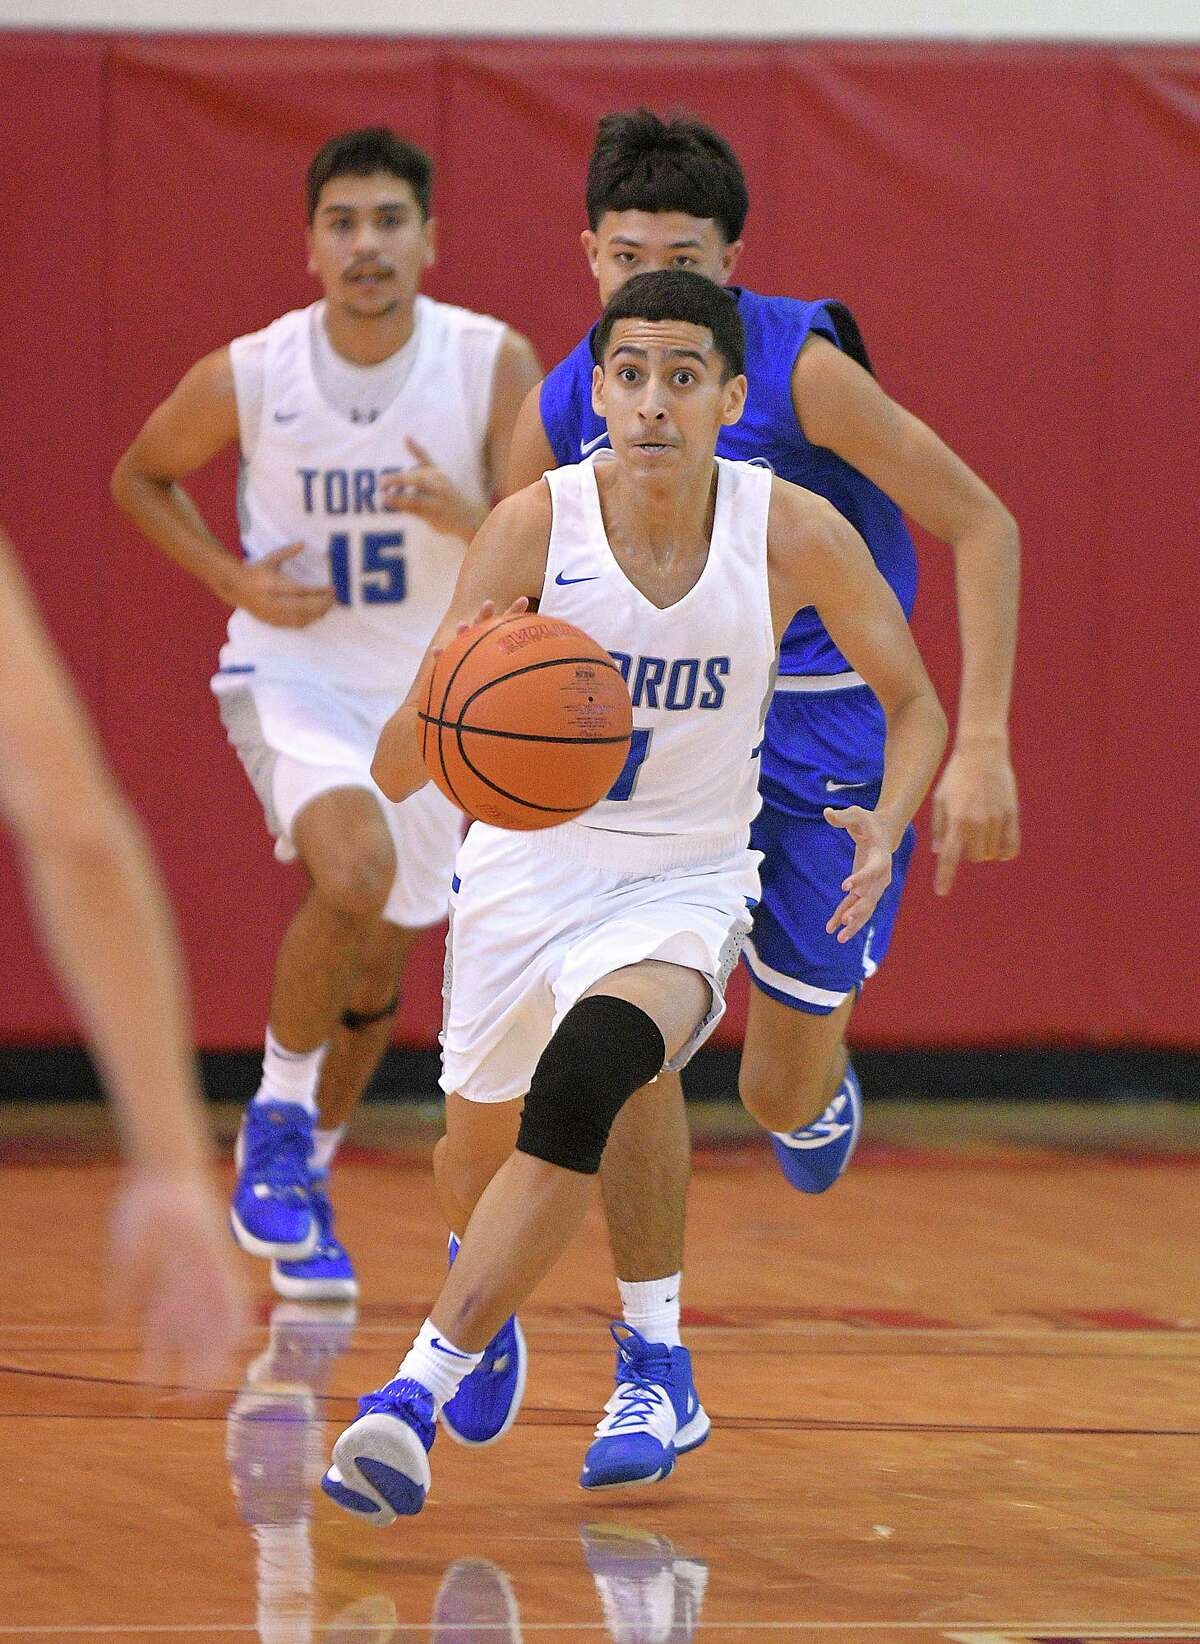 Cigarroa senior guard Bobby Meza averaged 13.2 points, three rebounds, two assists and two steals last season